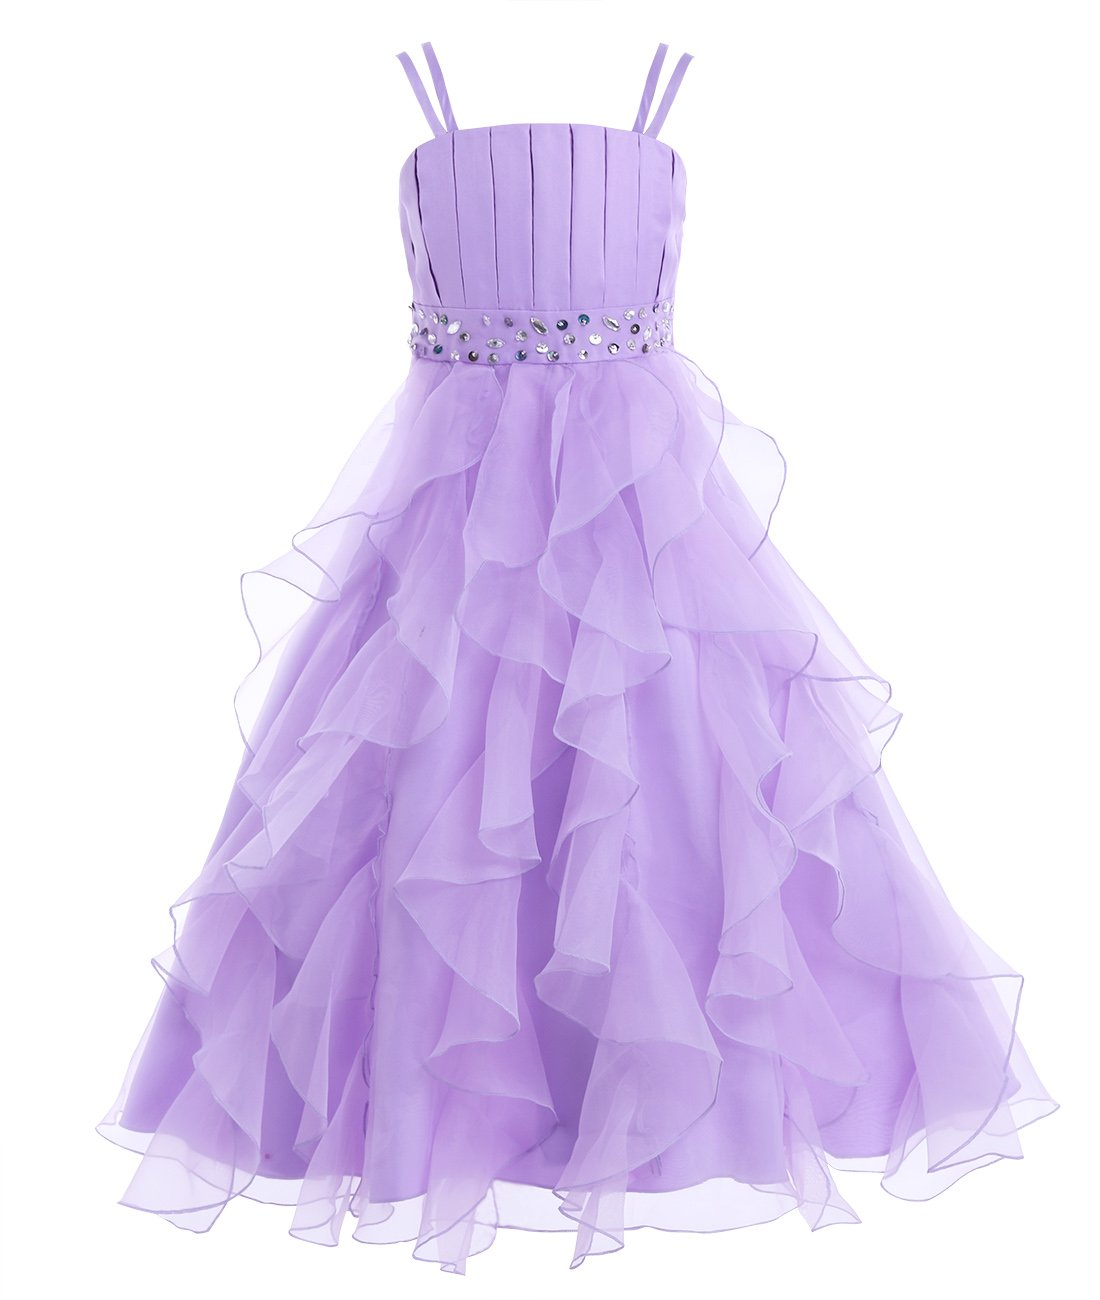 Amazon.com: Freebily Girls Organza Flower Girl Dress Princess Pageant Wedding Bridesmaid Birthday Party Dress: Clothing